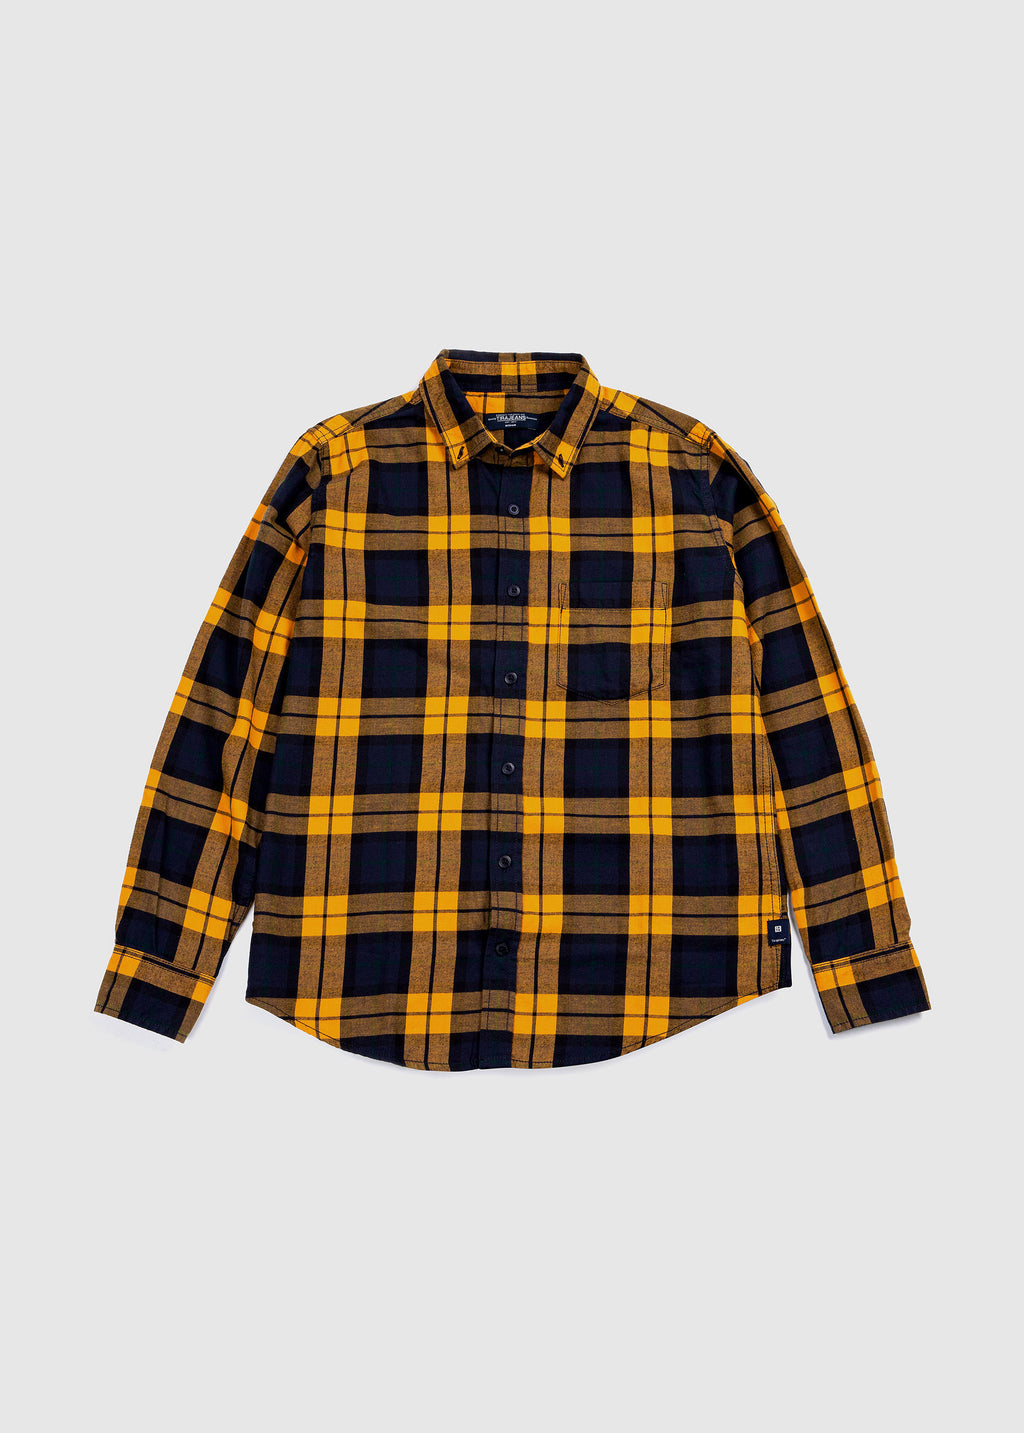 SHIRT L/S YELLOW FW